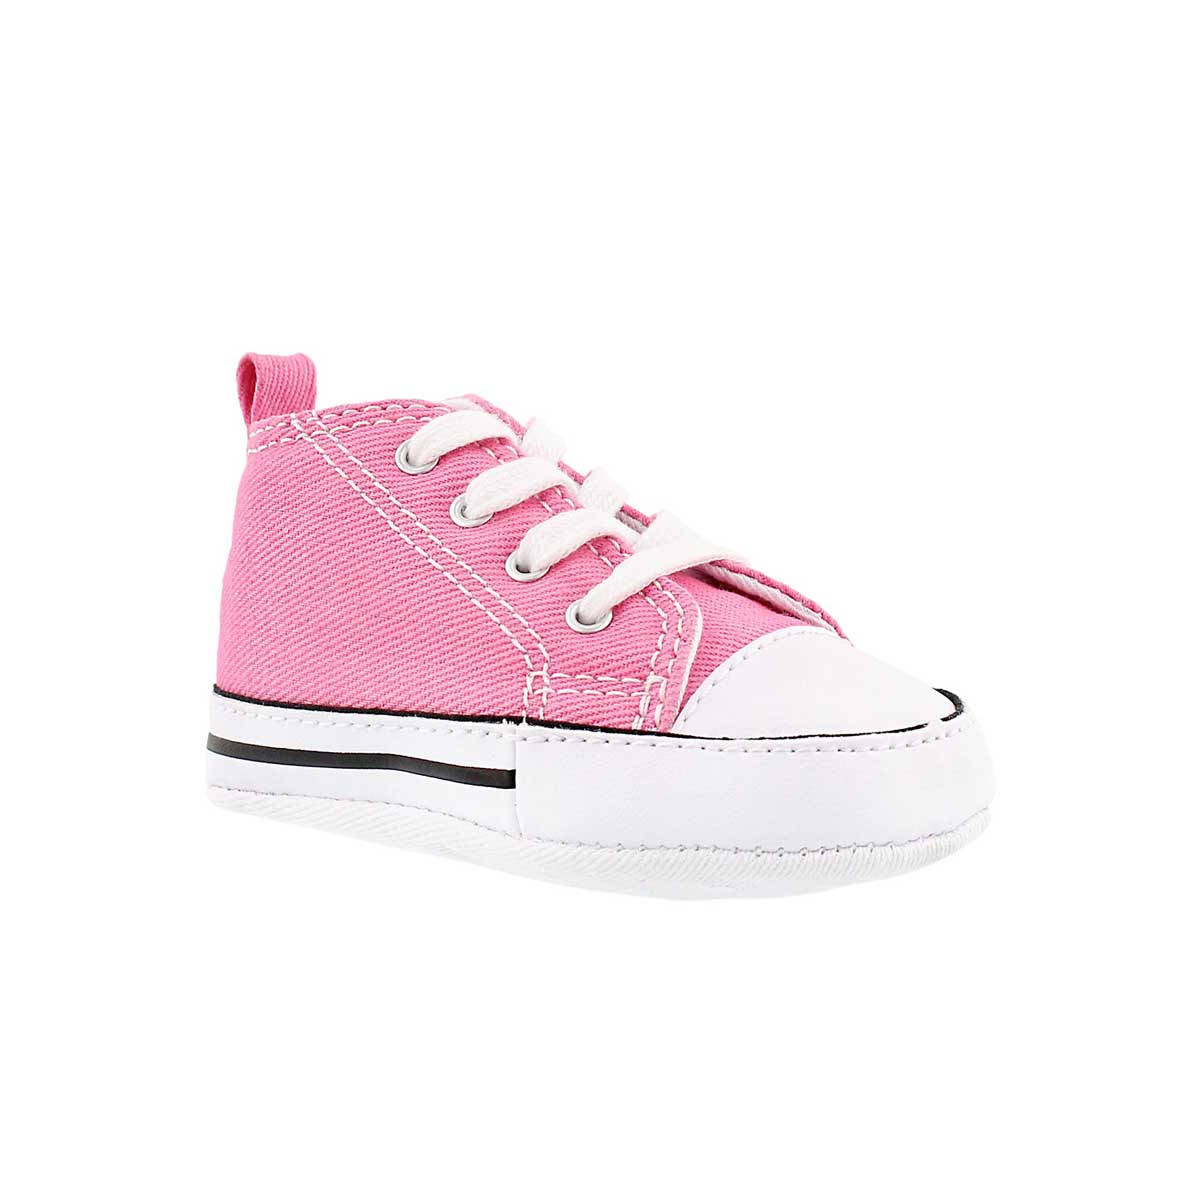 Infants' ALL STAR CRIB pink canvas sneakers